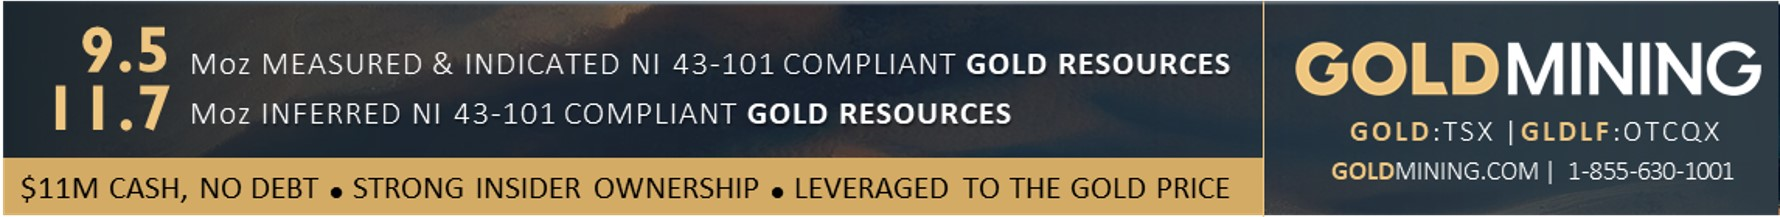 https://www.voiceamerica.com/content/images/show_images/1501/be/GoldMining ad banner 2Oct18.jpg